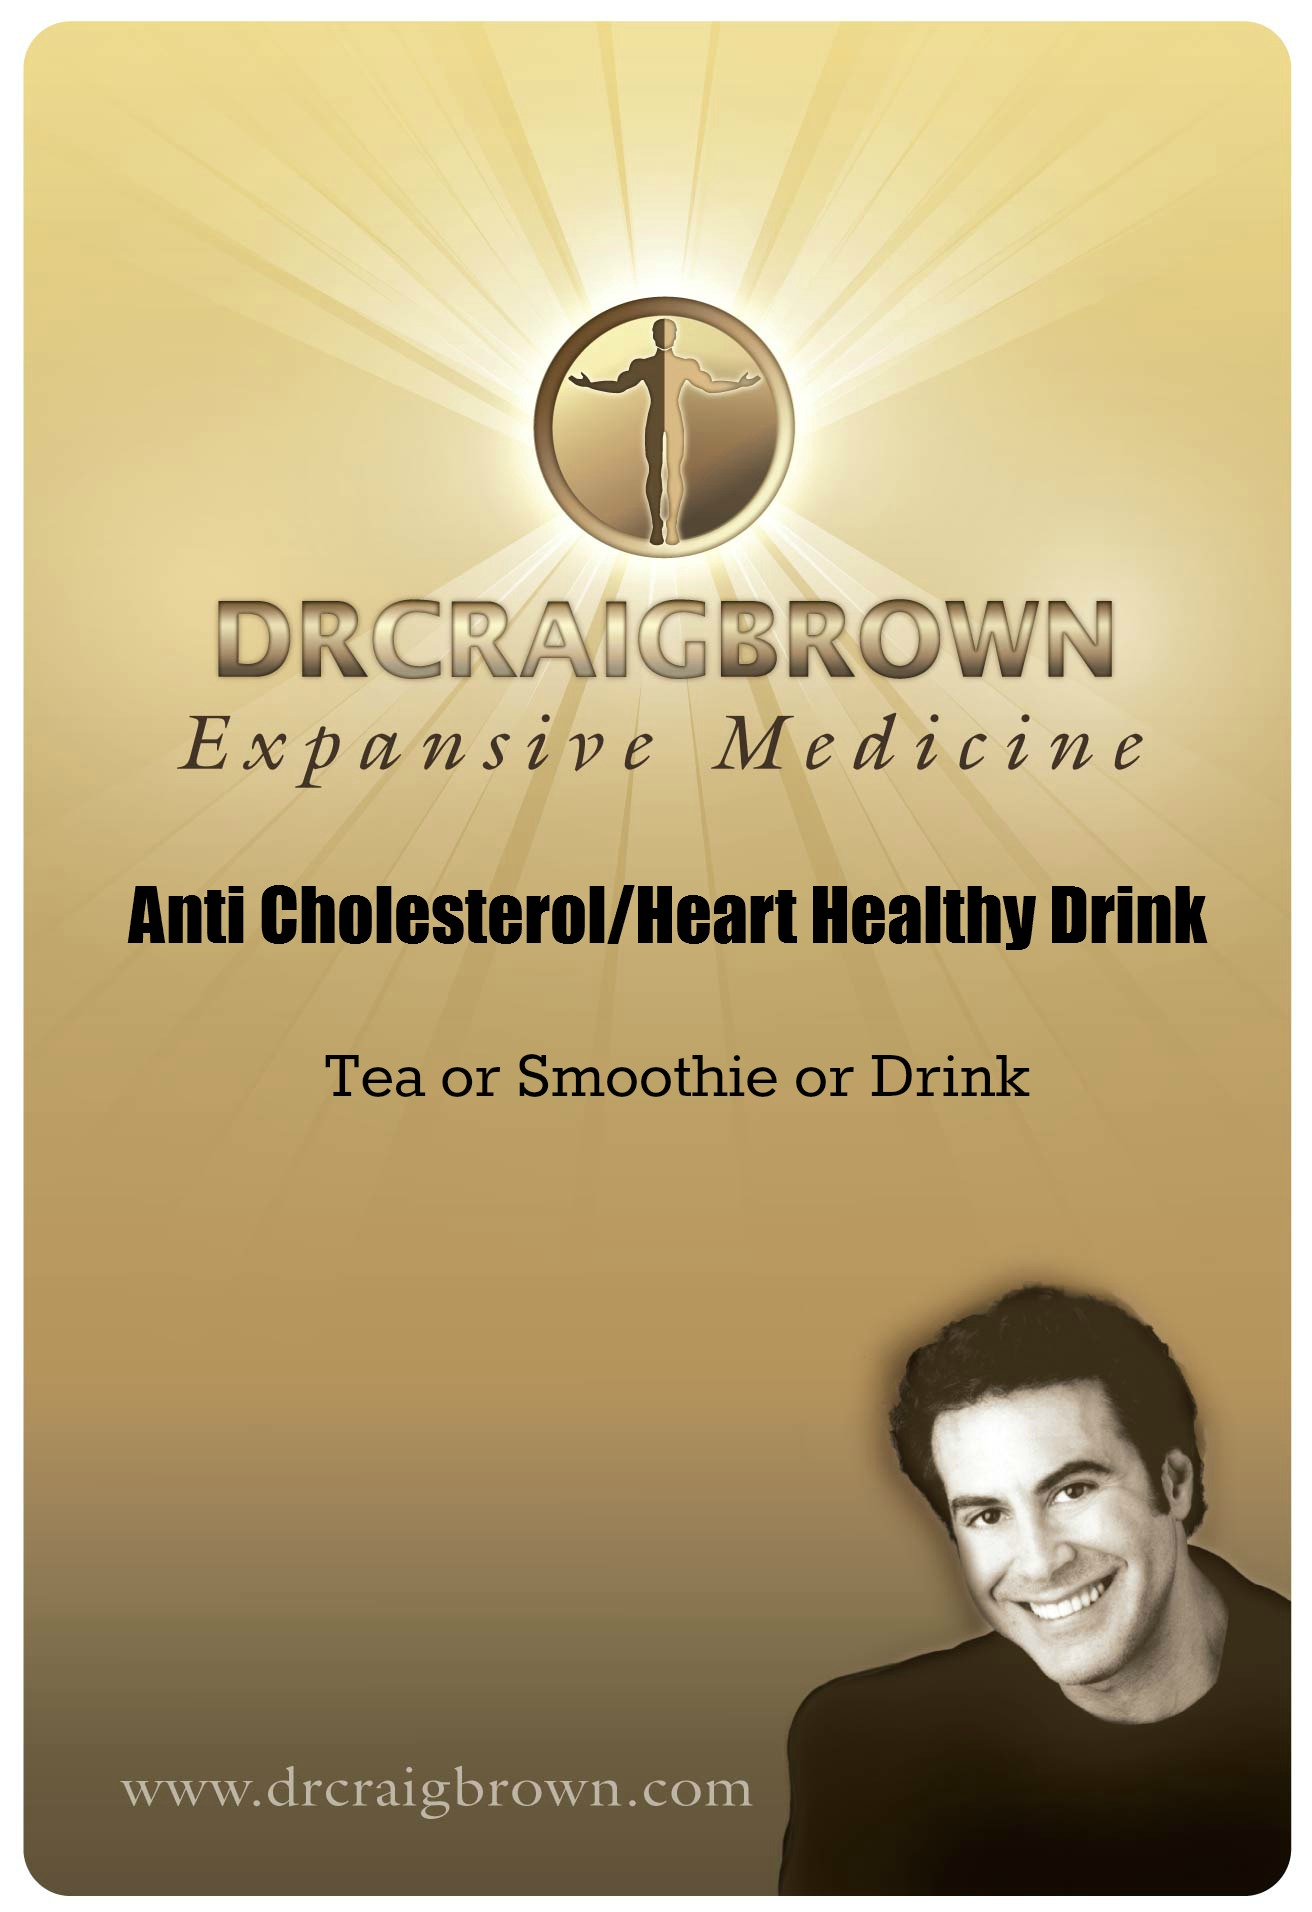 Anti Cholesterol Heart Healthy Drink foil bagsticker Bestest